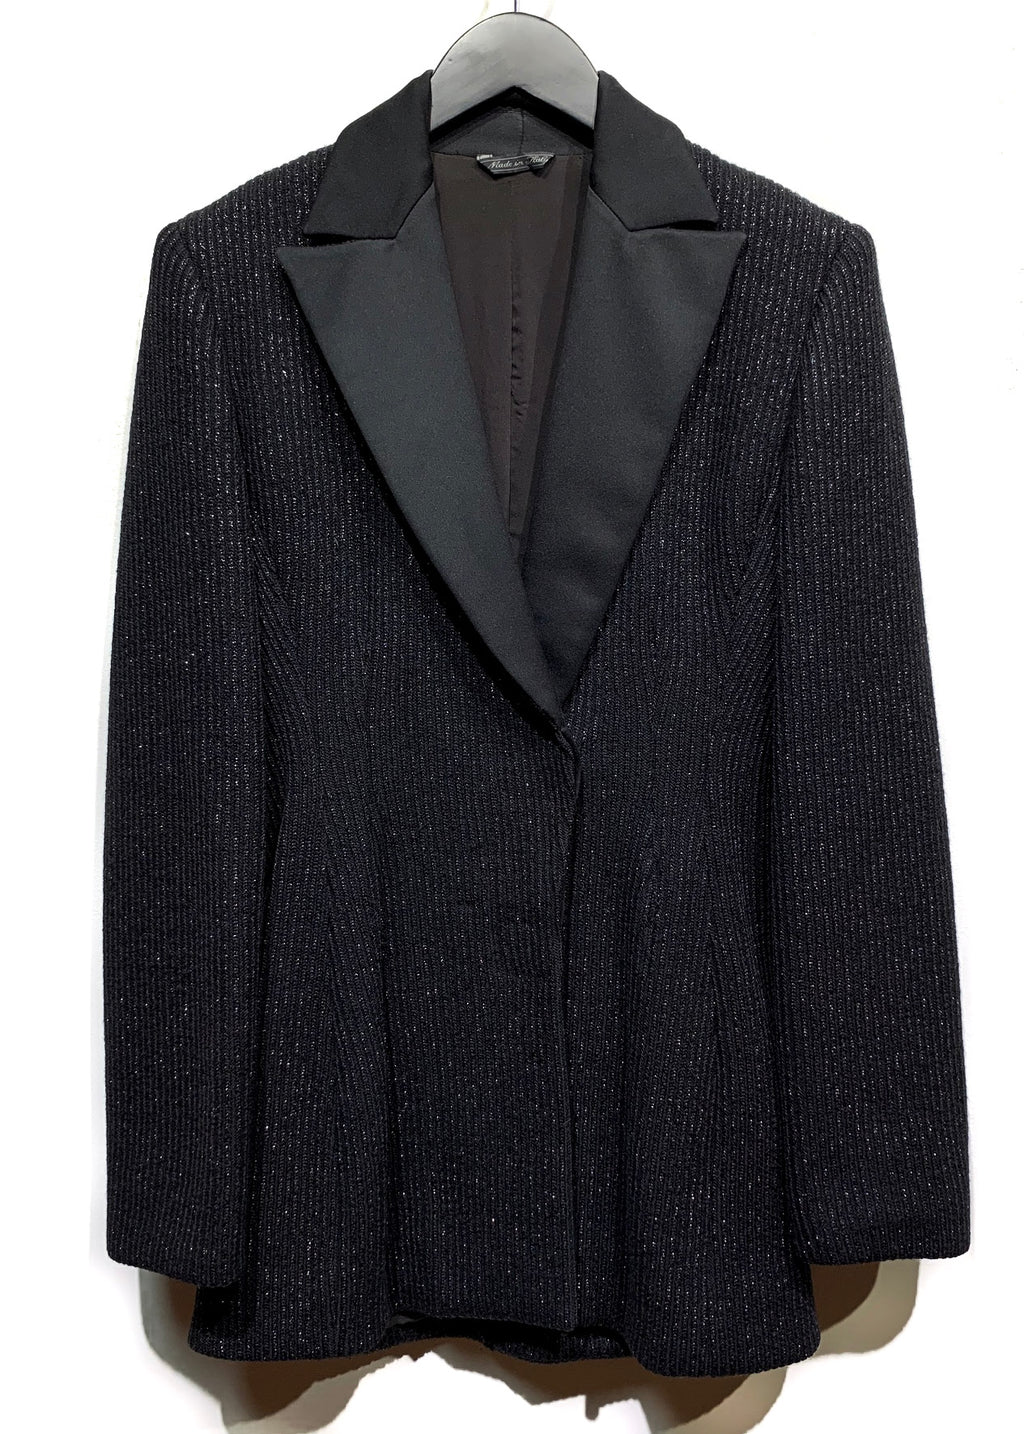 Gianni Versace Vintage Lurex Ribbed Stretch Long Blazer